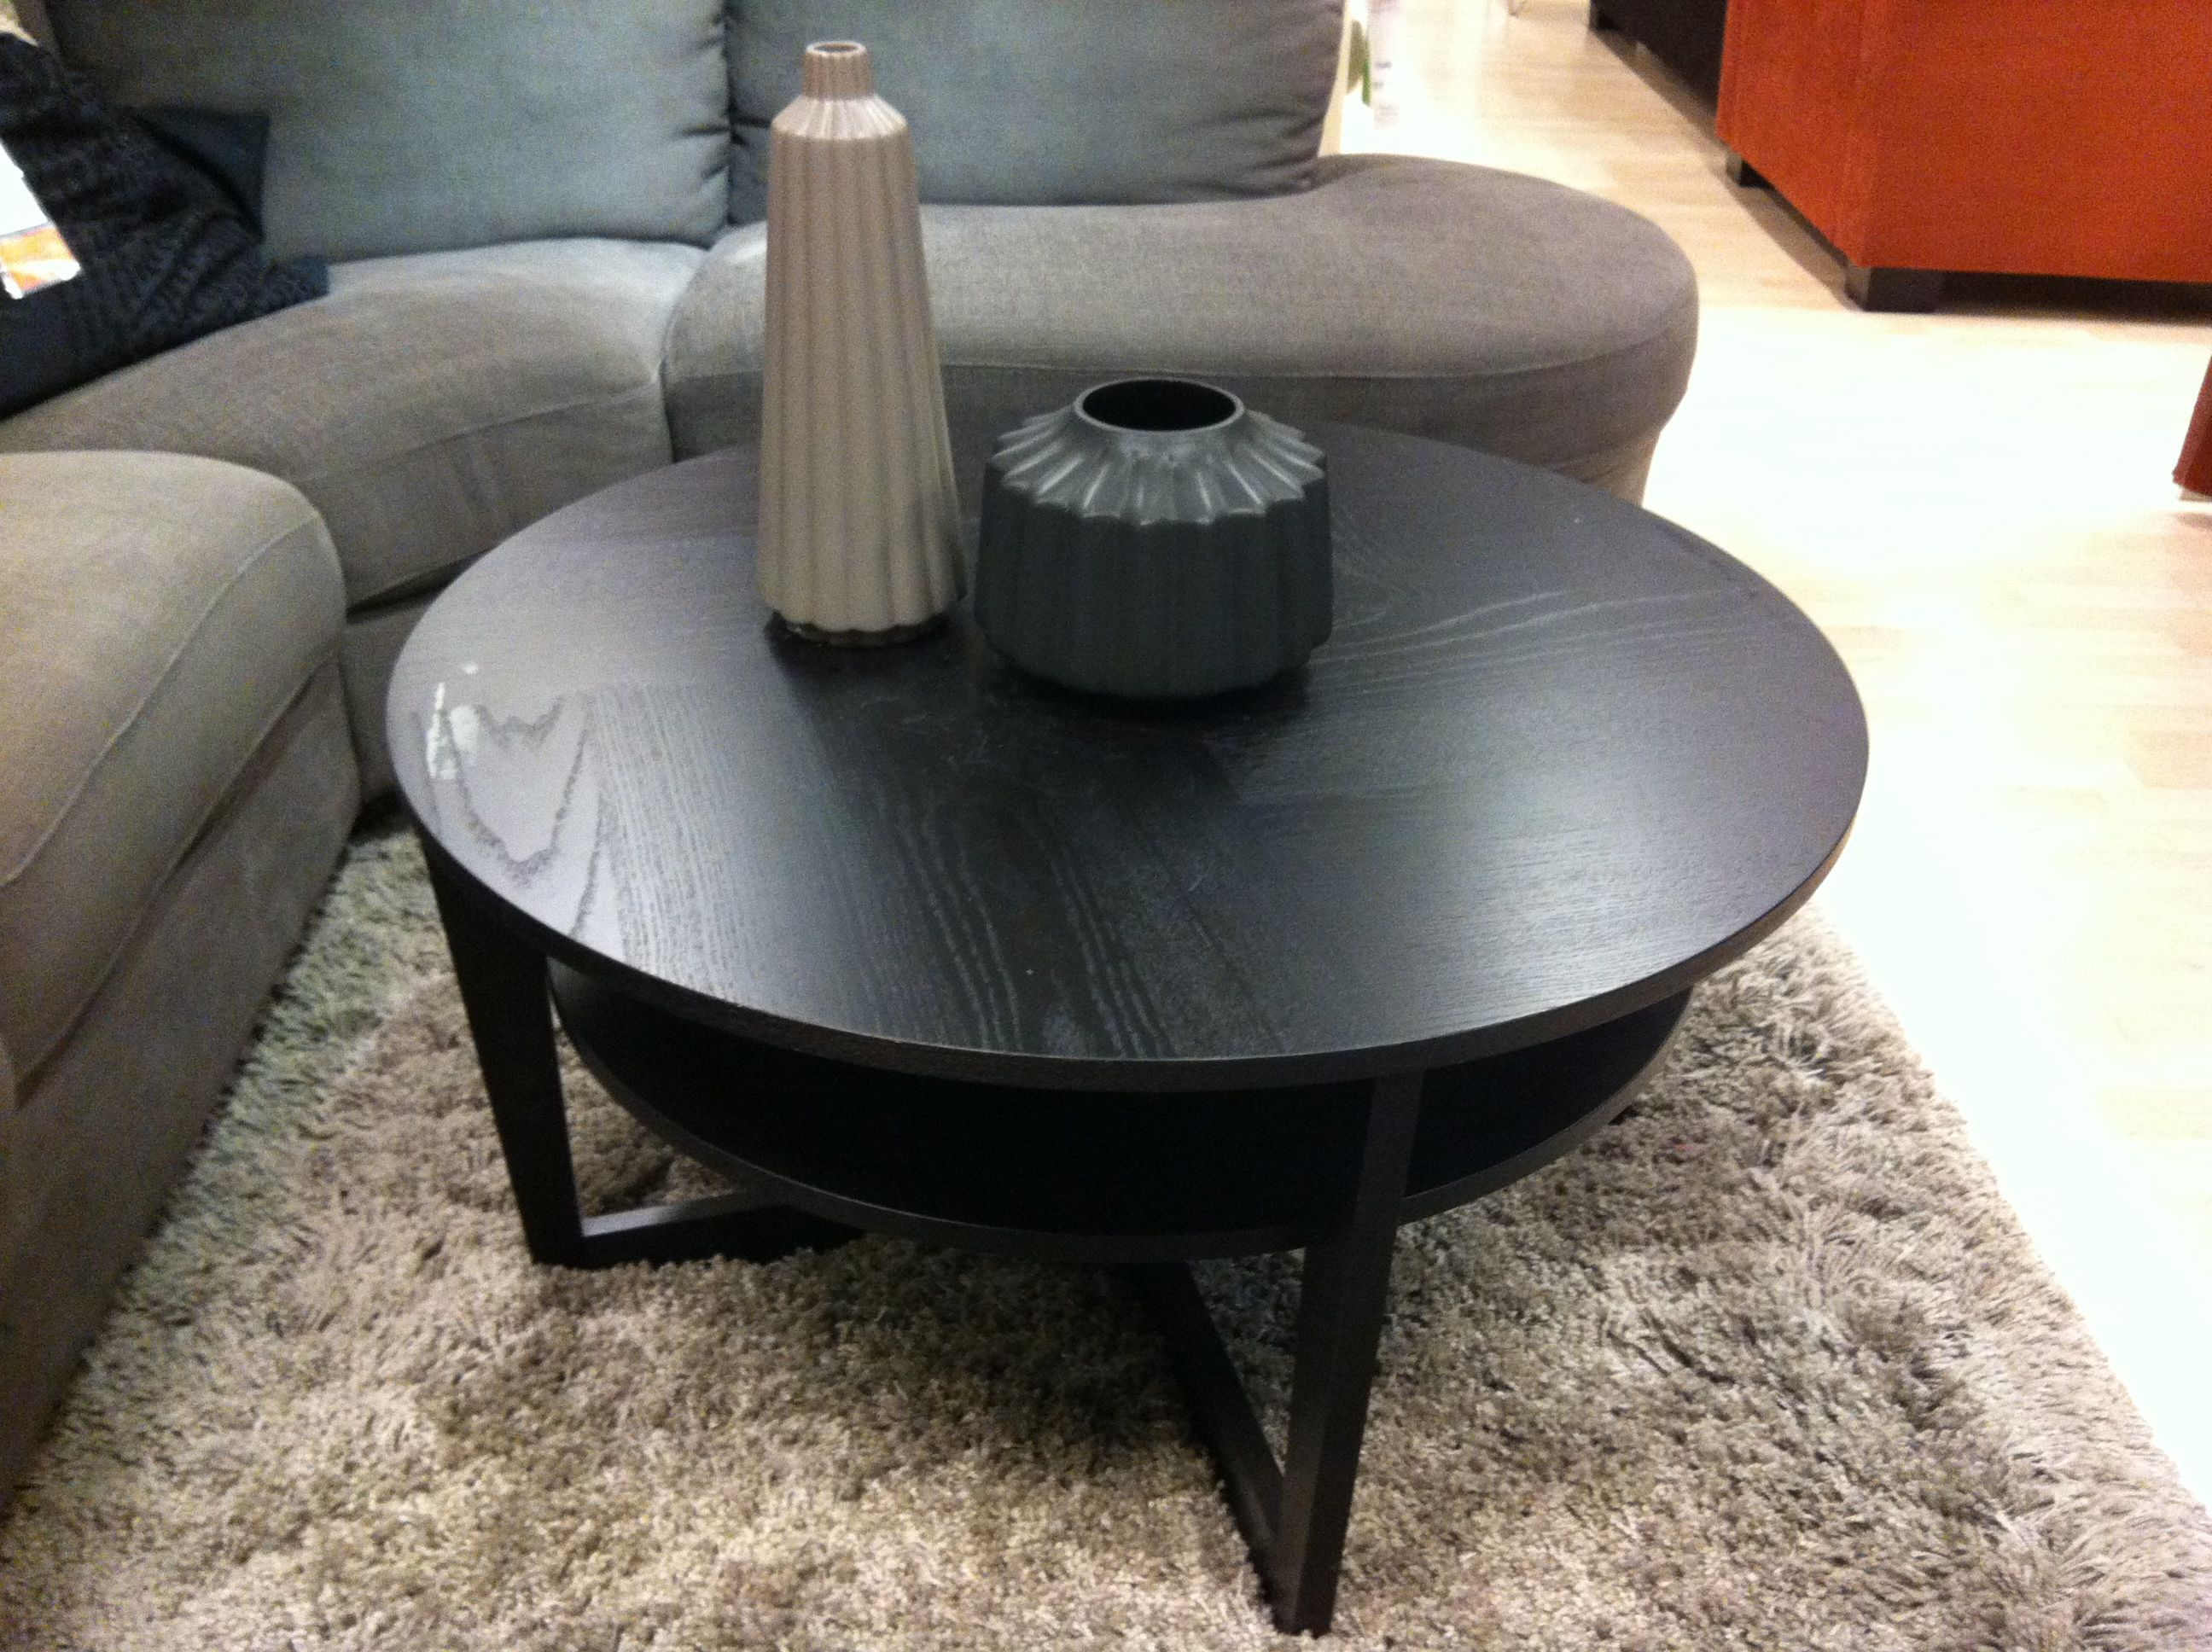 Pin By Melissa Riche On Ck Collection Ikea Coffee Table Round Wood Coffee Table Coffee Table Furniture [ 1936 x 2592 Pixel ]